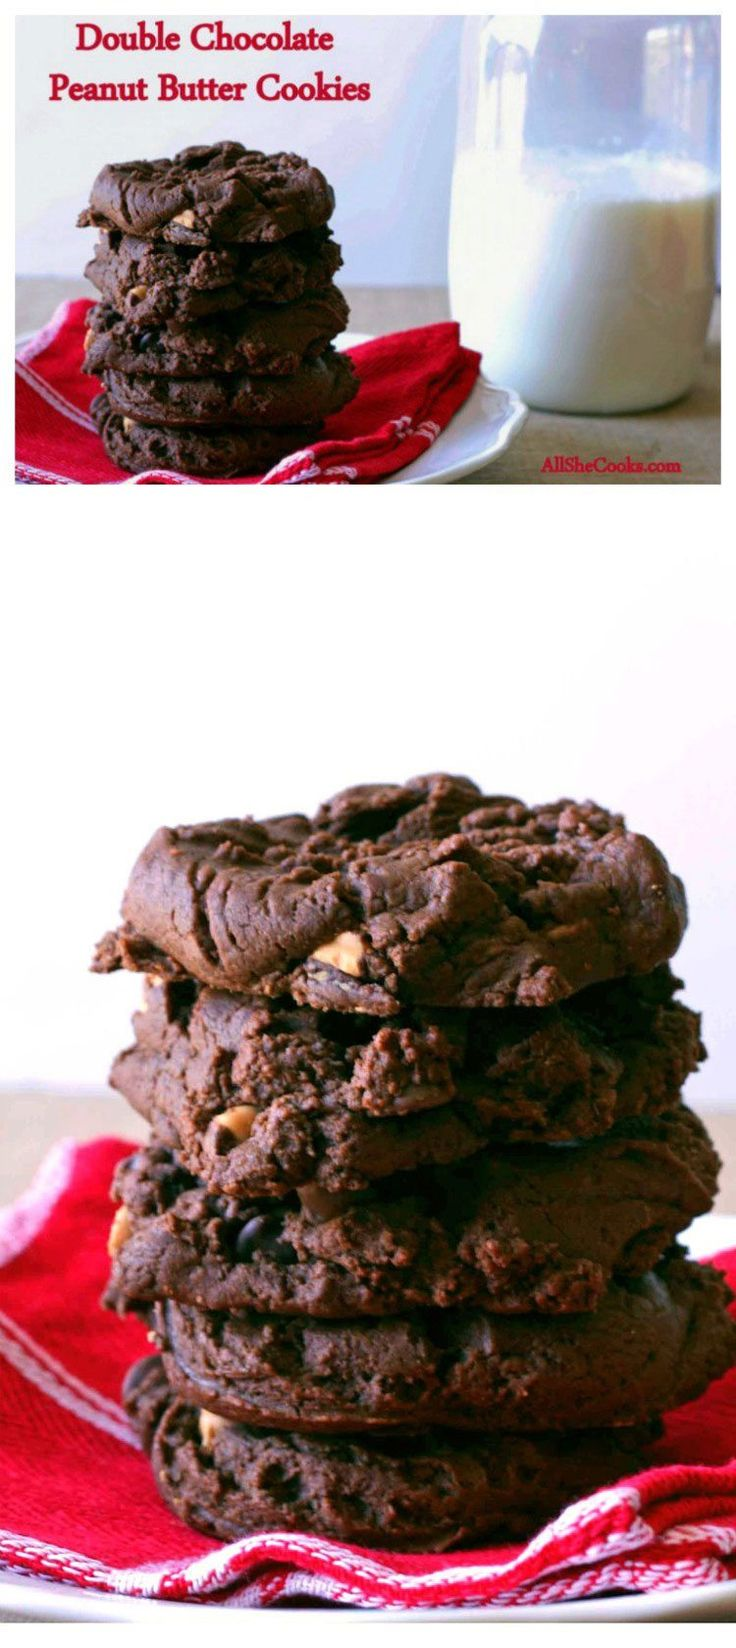 Easy Christmas Cookies Recipes make holiday baking fun and easy.. Try our Double Chocolate Peanut Butter Cookies for easy holiday baking delight.